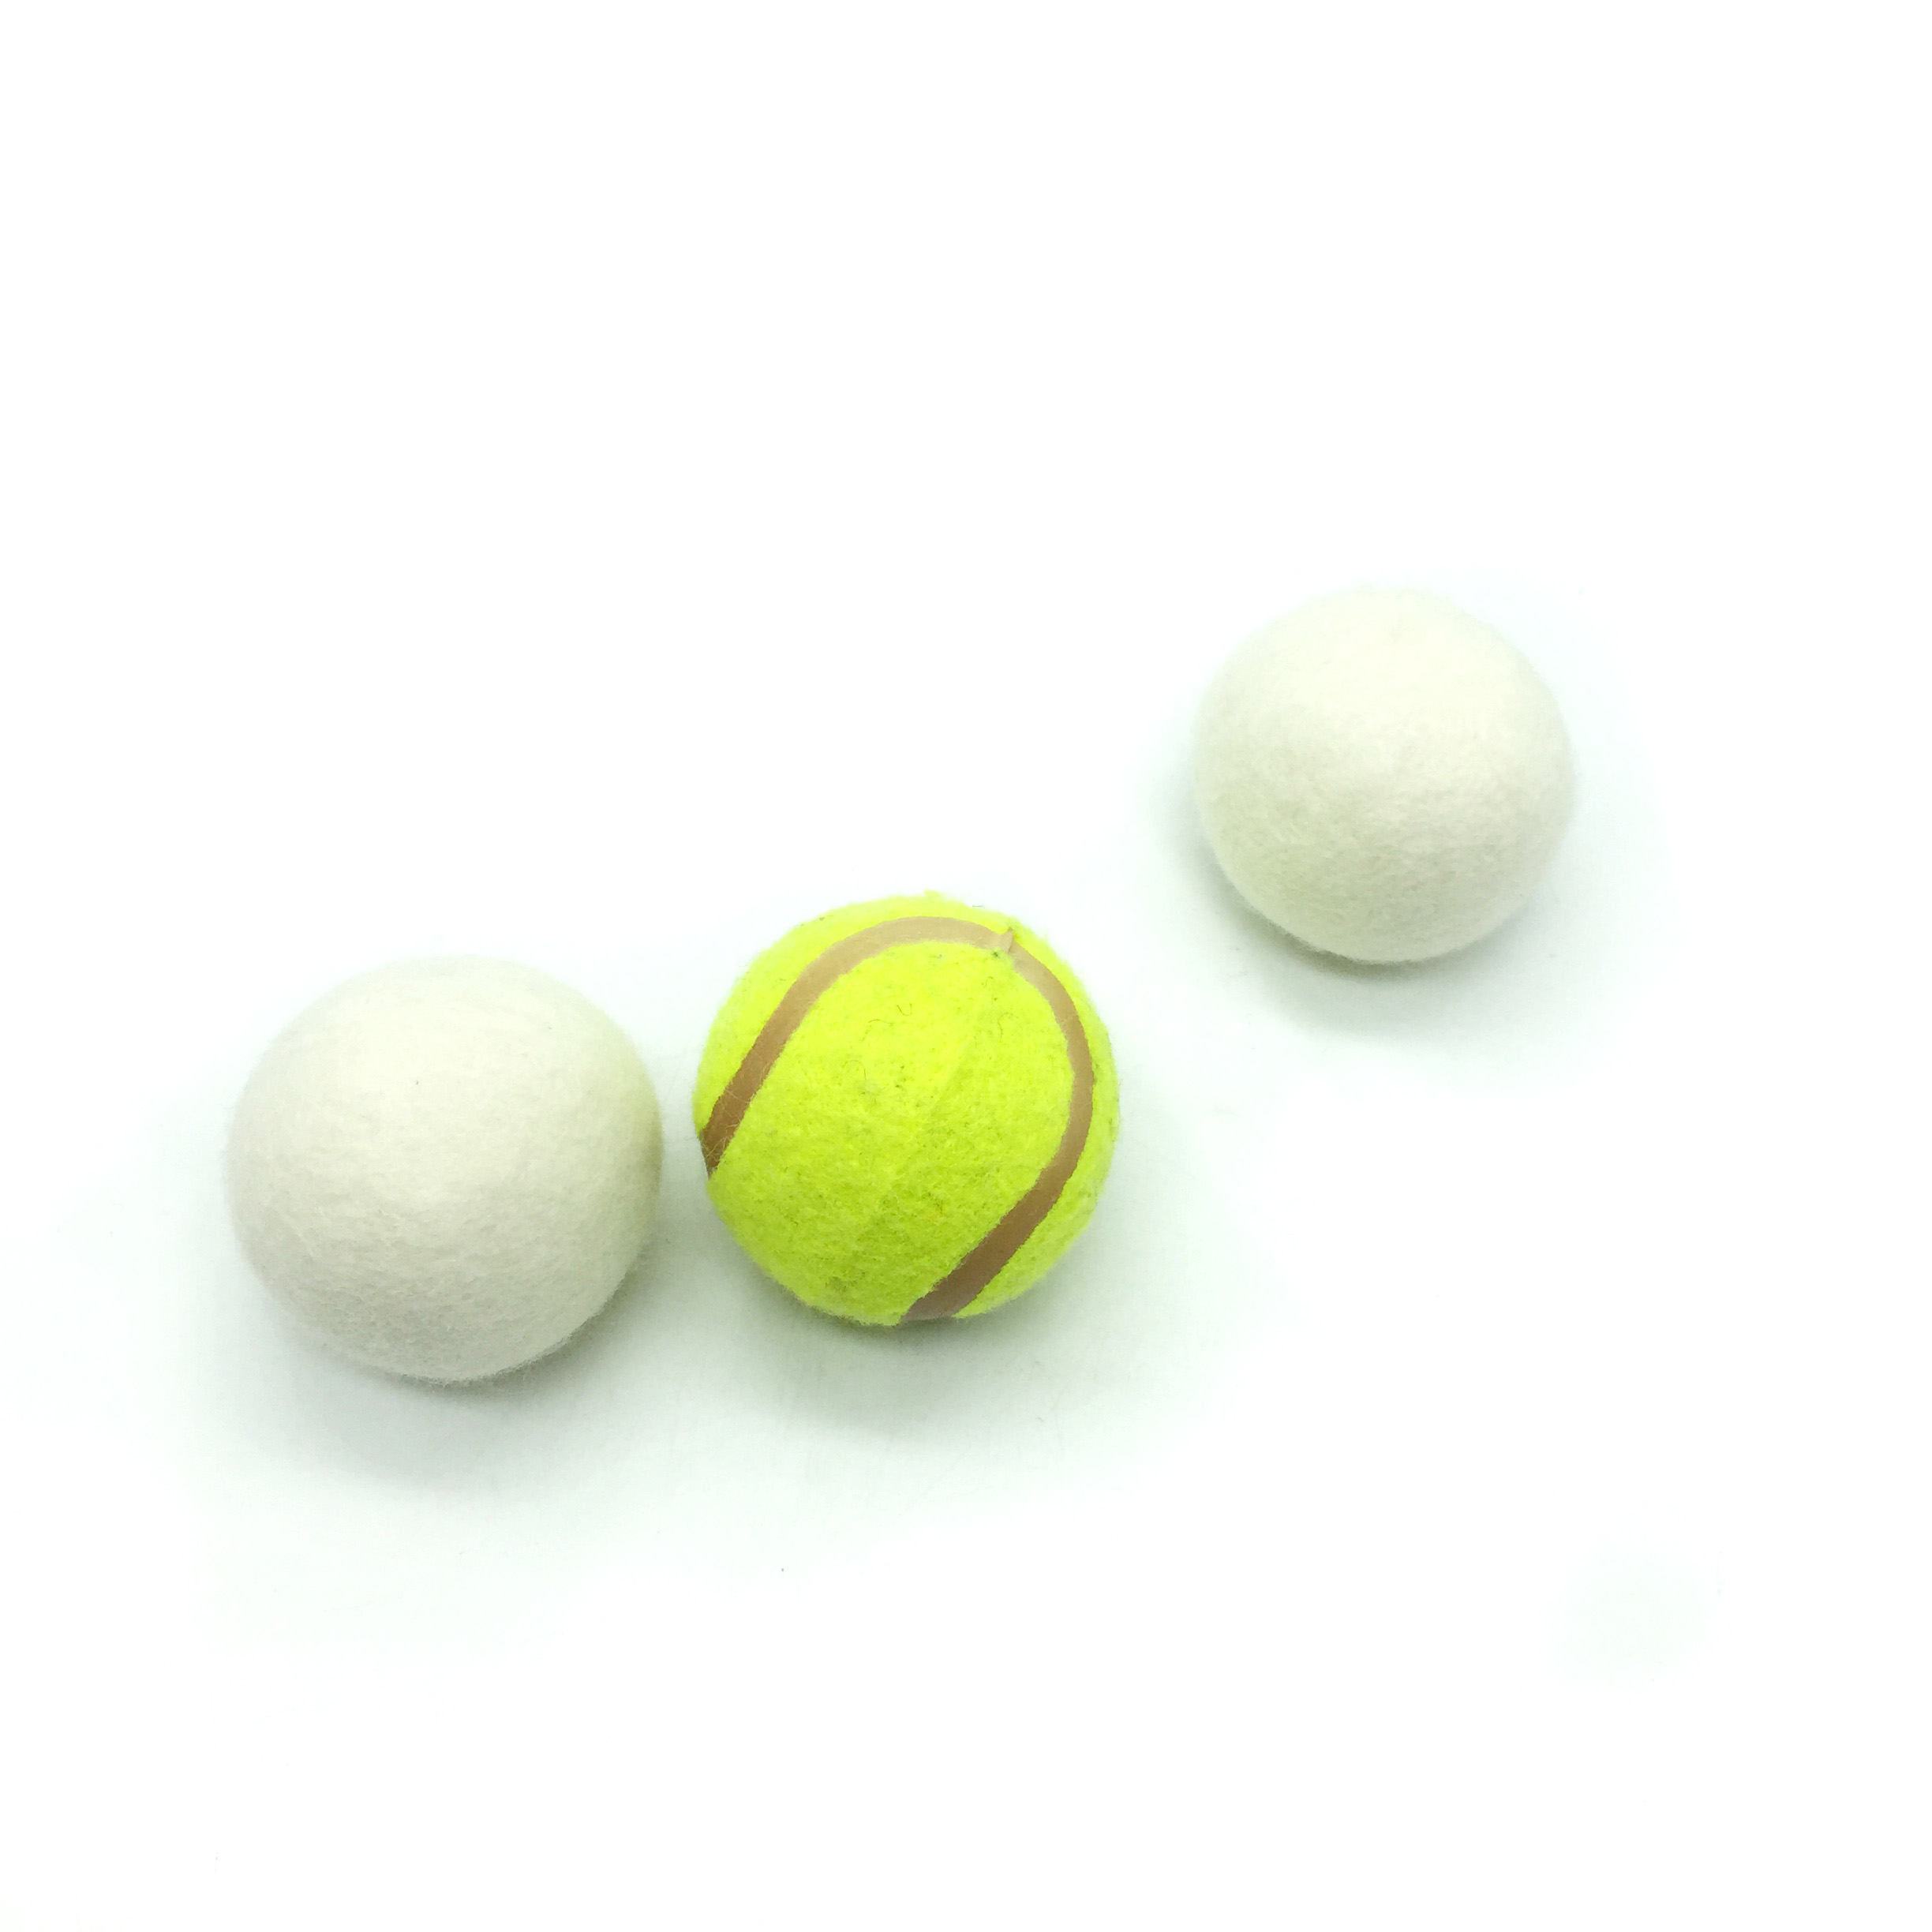 100% commercio all'ingrosso di lana Schafwolle Trocknerballe anti statica dryer balls